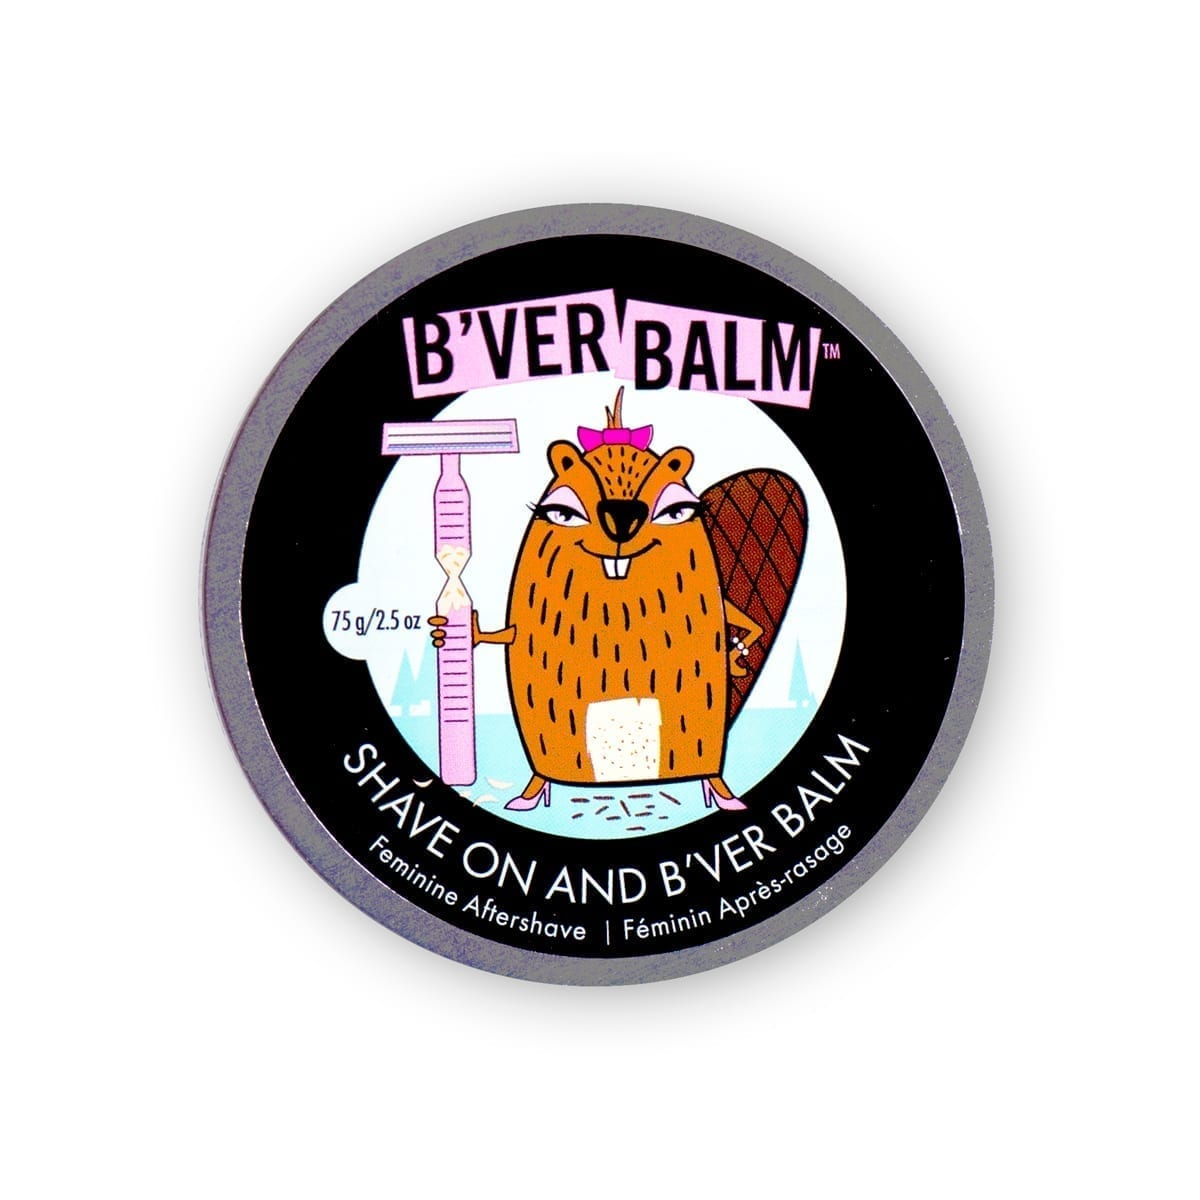 B'ver Balm Aftershave Balm